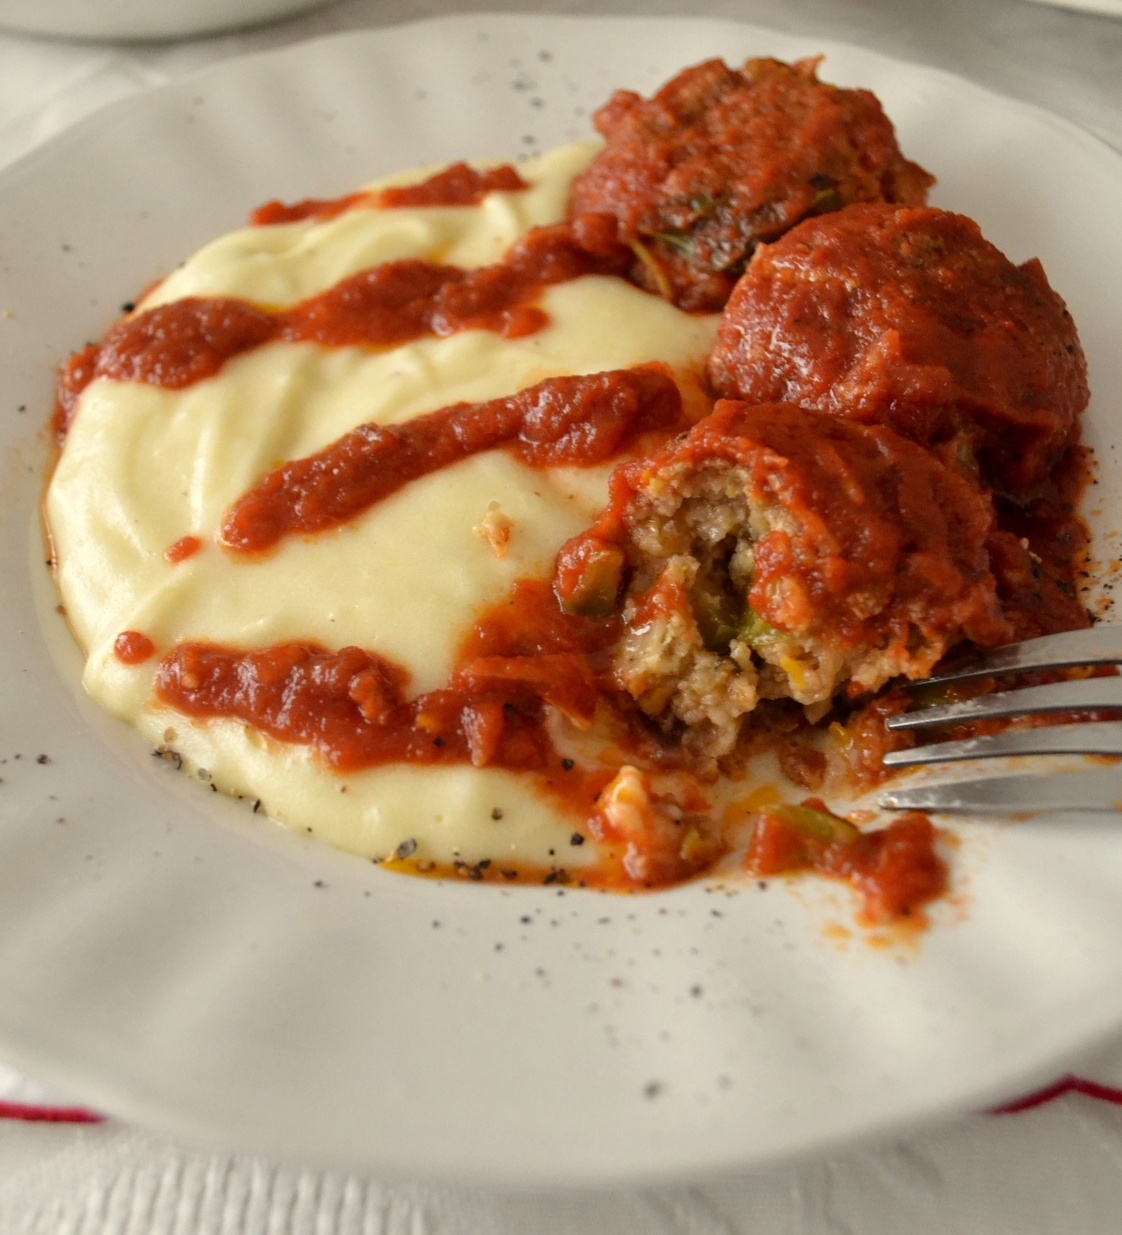 vegan Red Soy Meatballs and Tomato Sauce